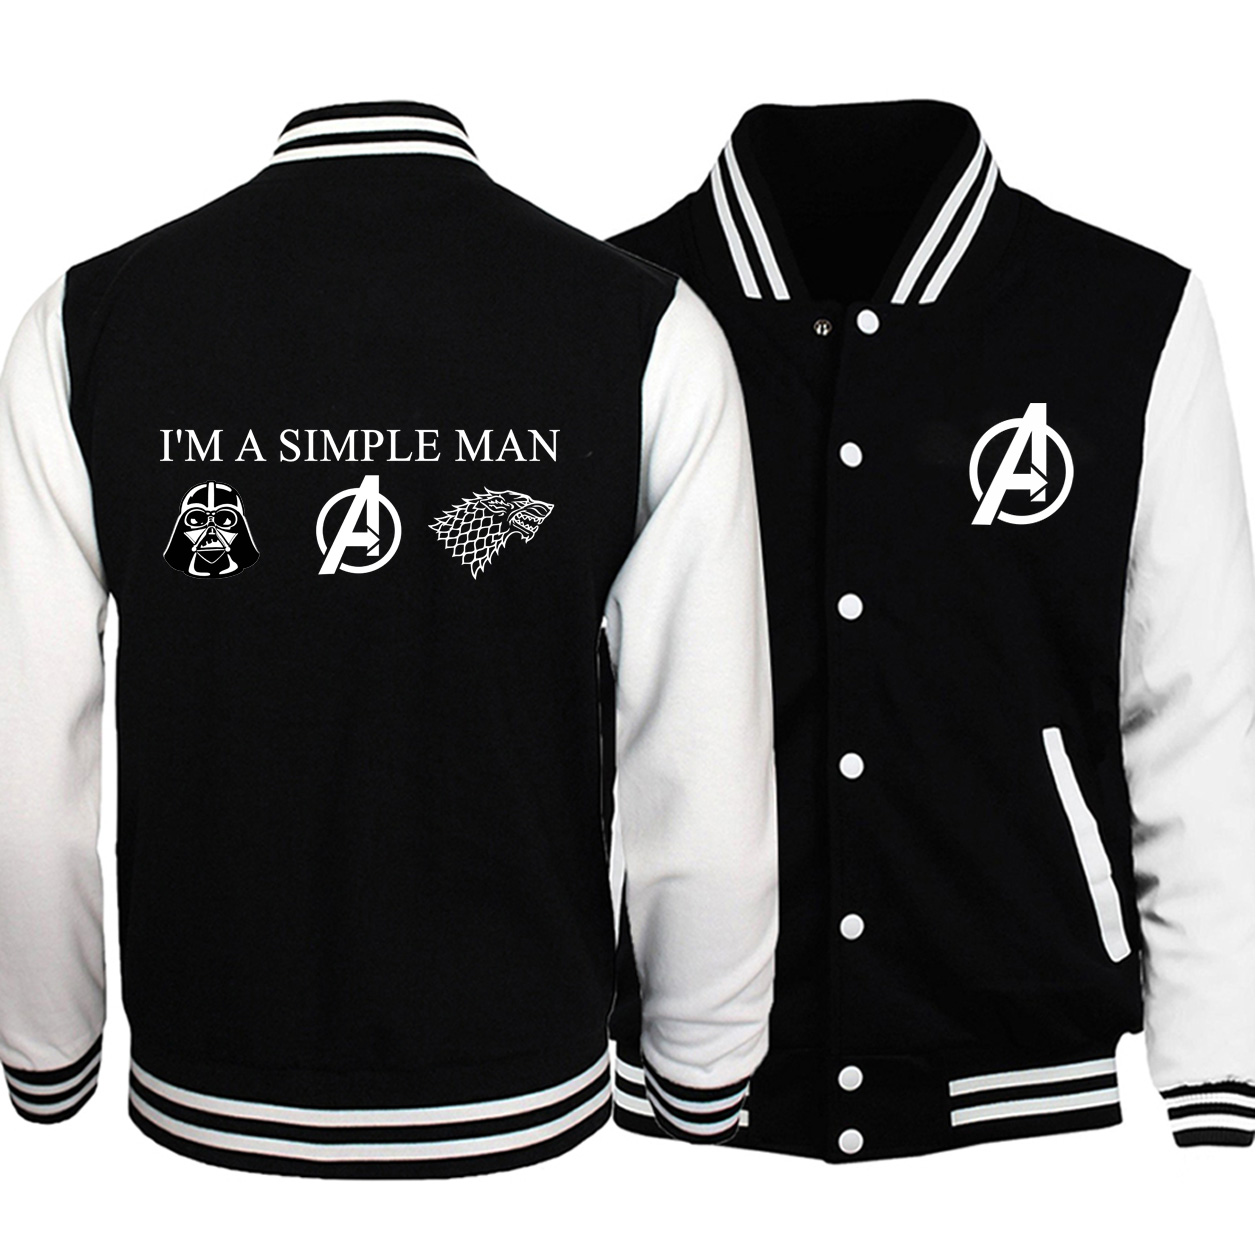 Men Avengers Game Of Thrones Print Baseball Jackets I'm A Simple Man Love Star Wars Pattern 2019 Winter Black Warm Fleece Jacket